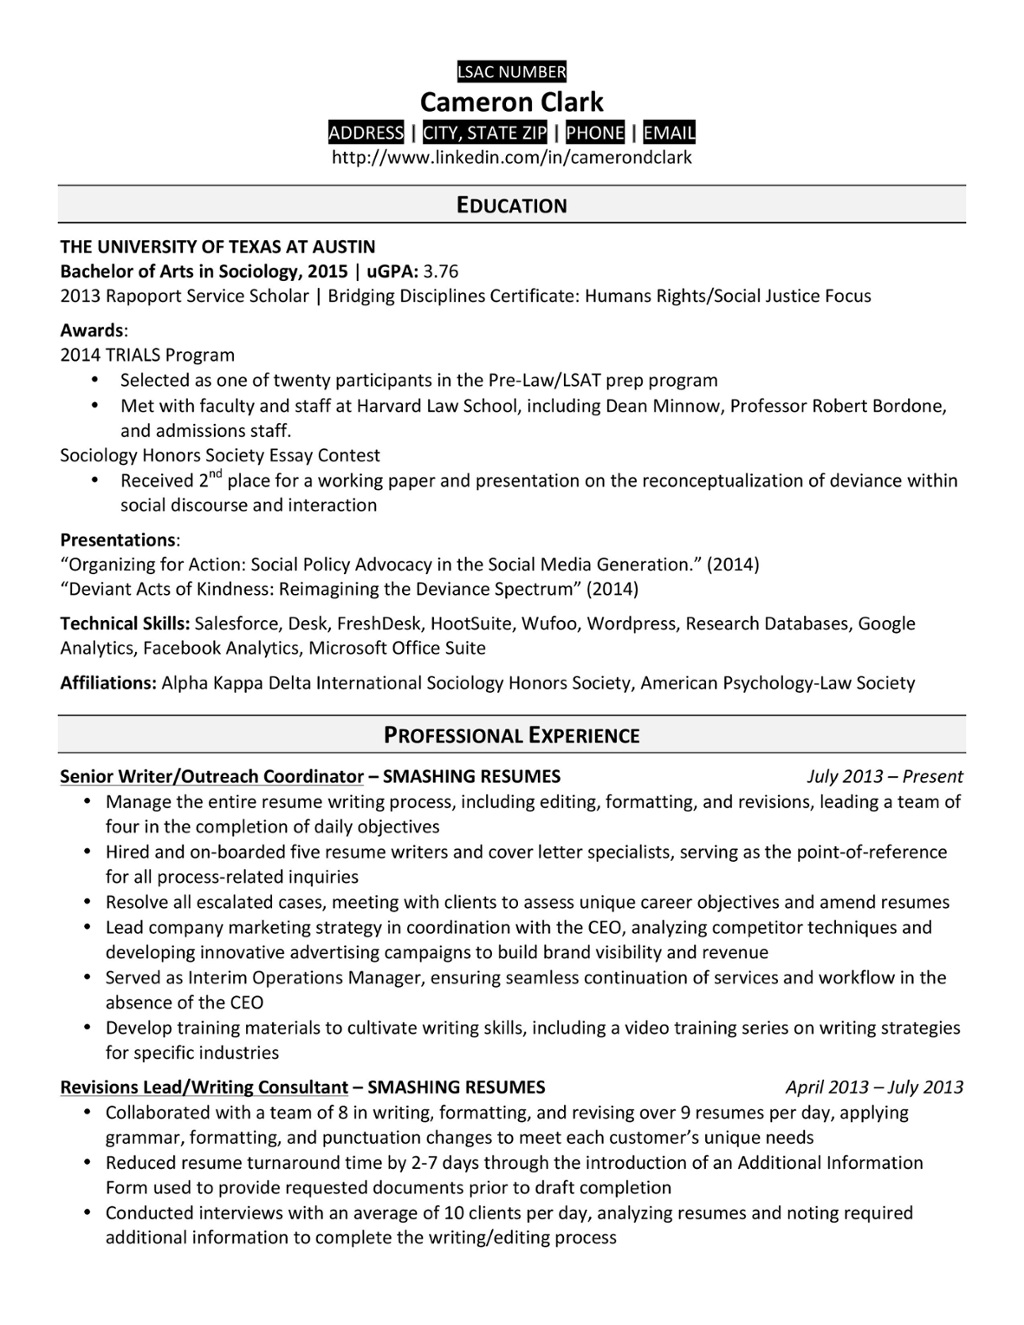 A Law School Resume That Made the Cut | Top Law Schools | US News